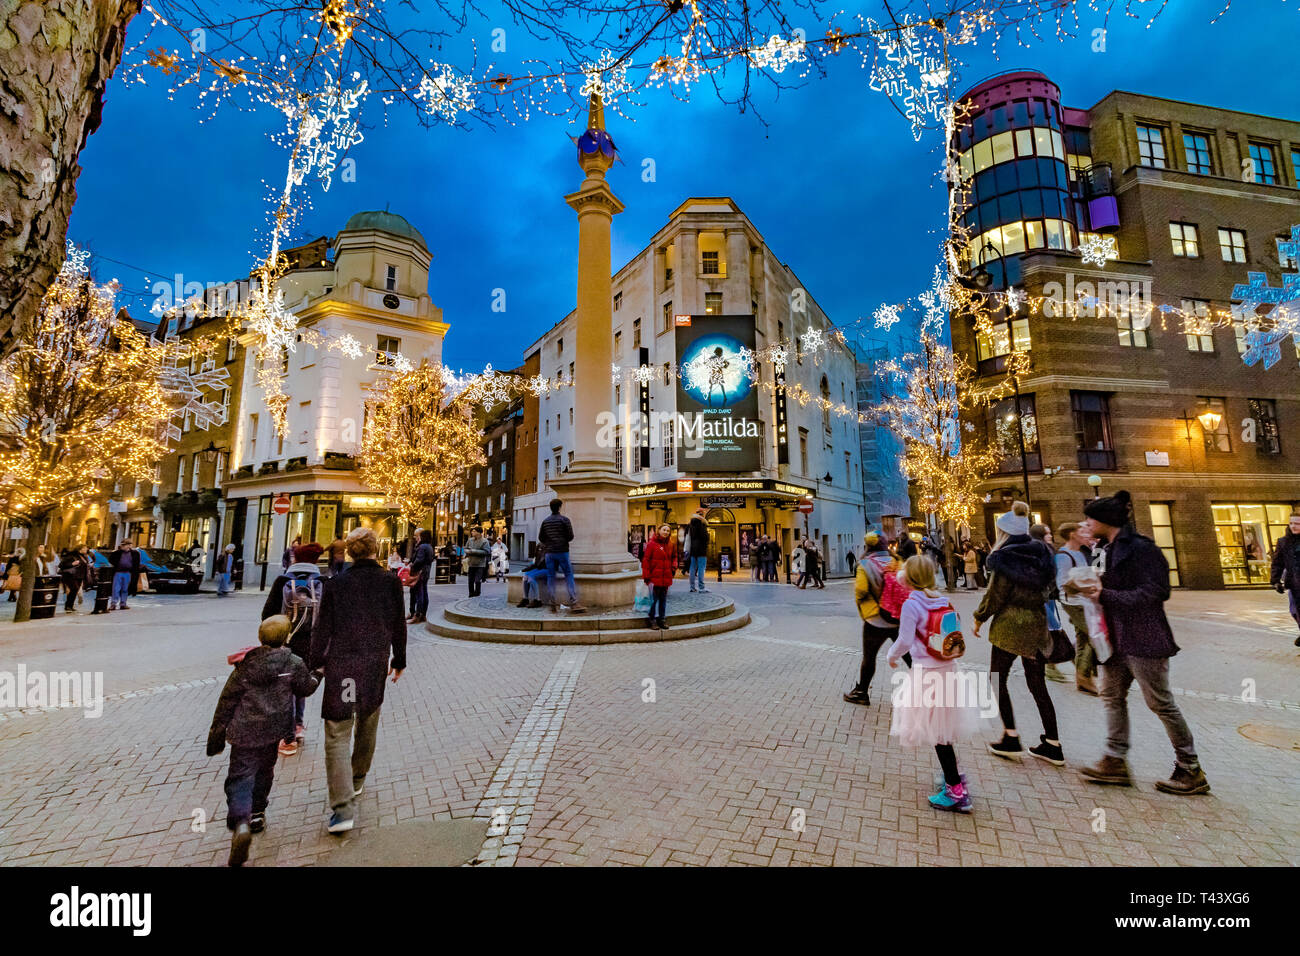 Musical Christmas Lights.The Christmas Lights At Seven Dials Busy With Shoppers And